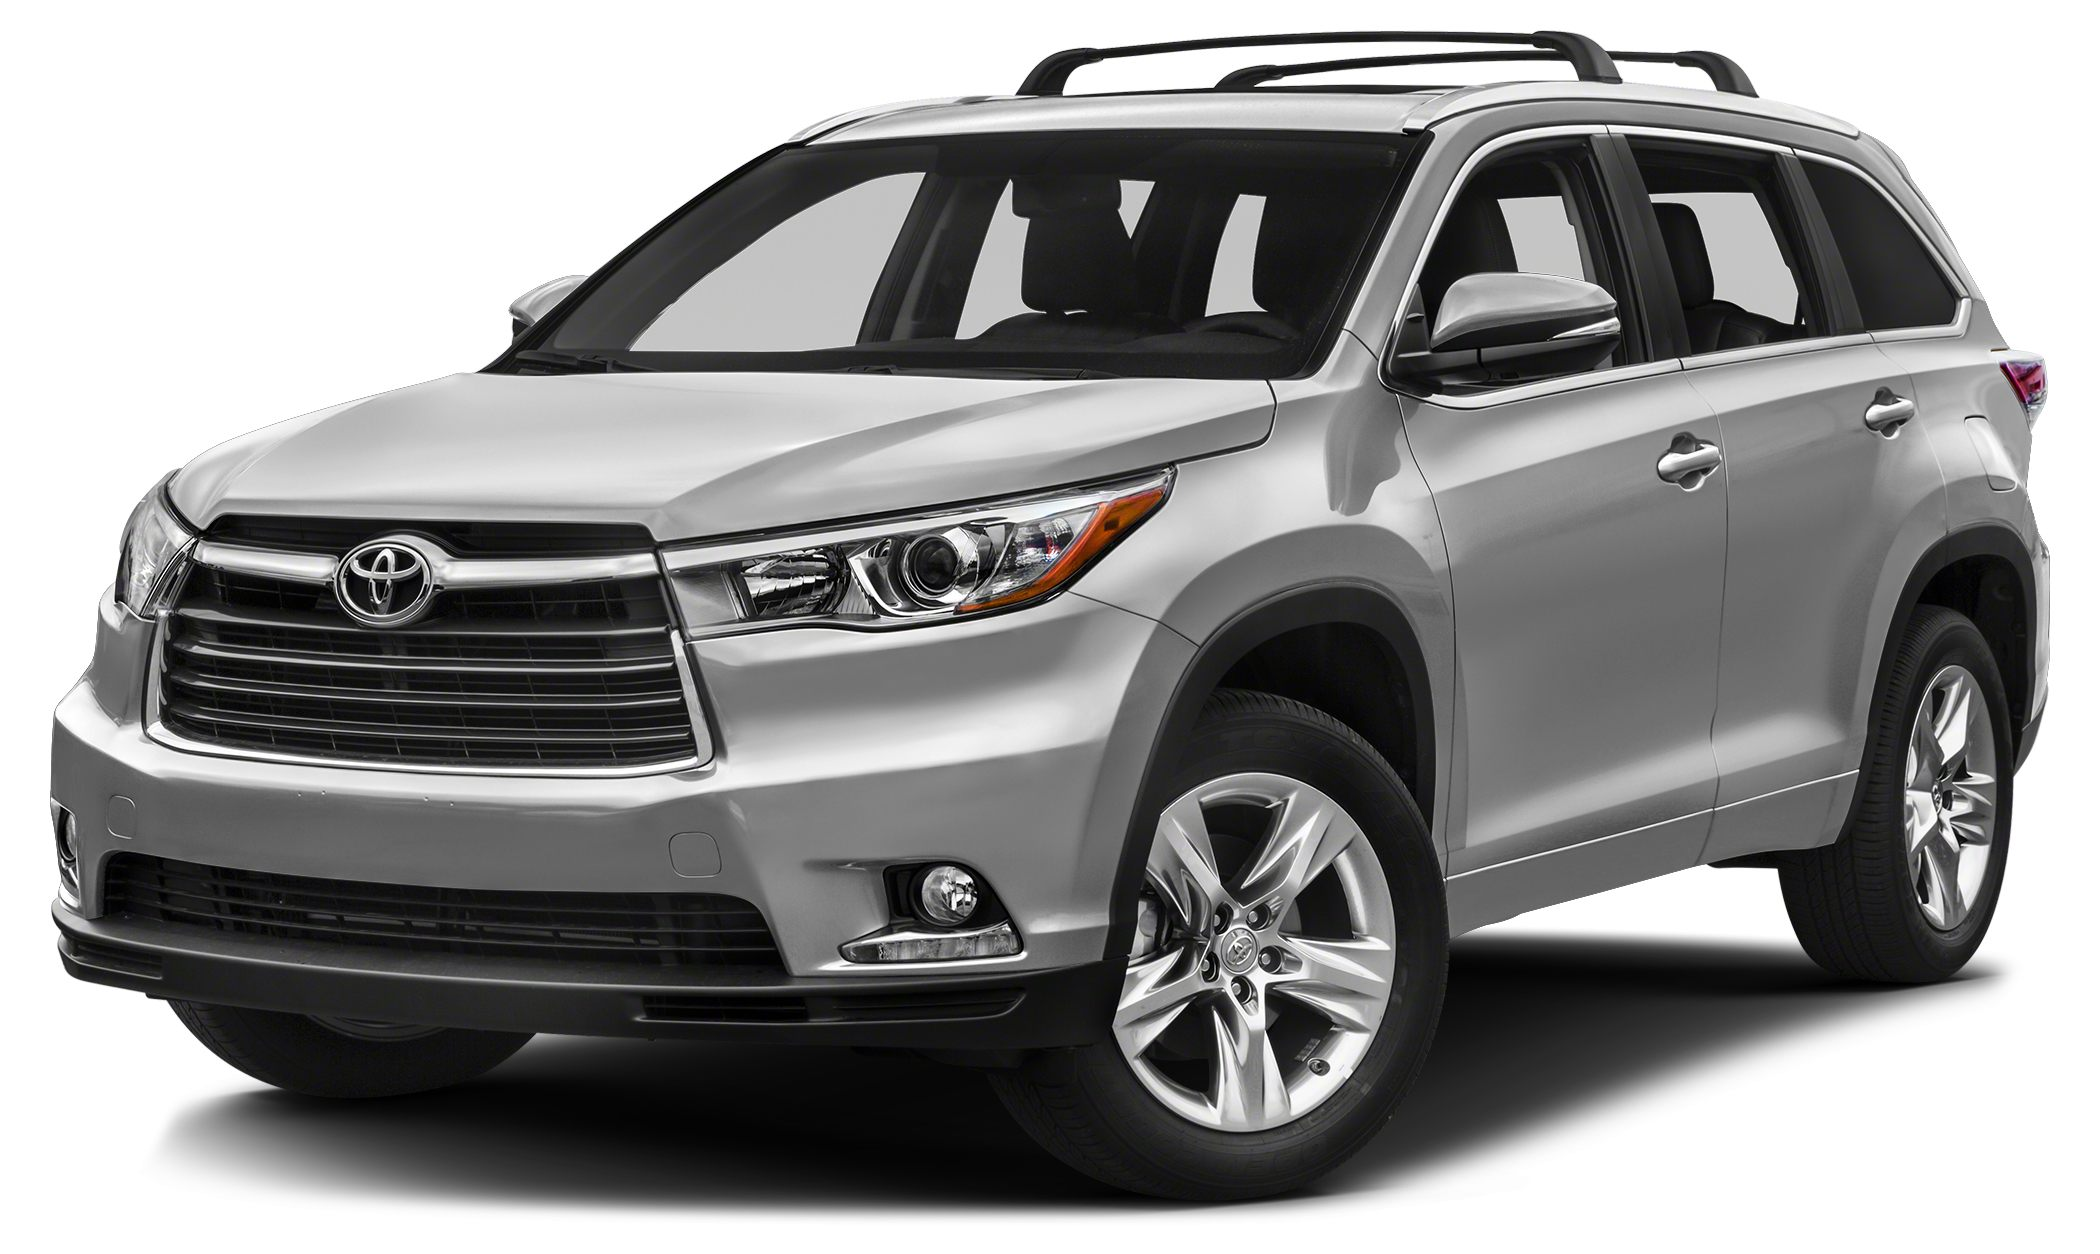 2015 Toyota Highlander LE Plus EPA 24 MPG Hwy18 MPG City CARFAX 1-Owner ONLY 27523 Miles Thir